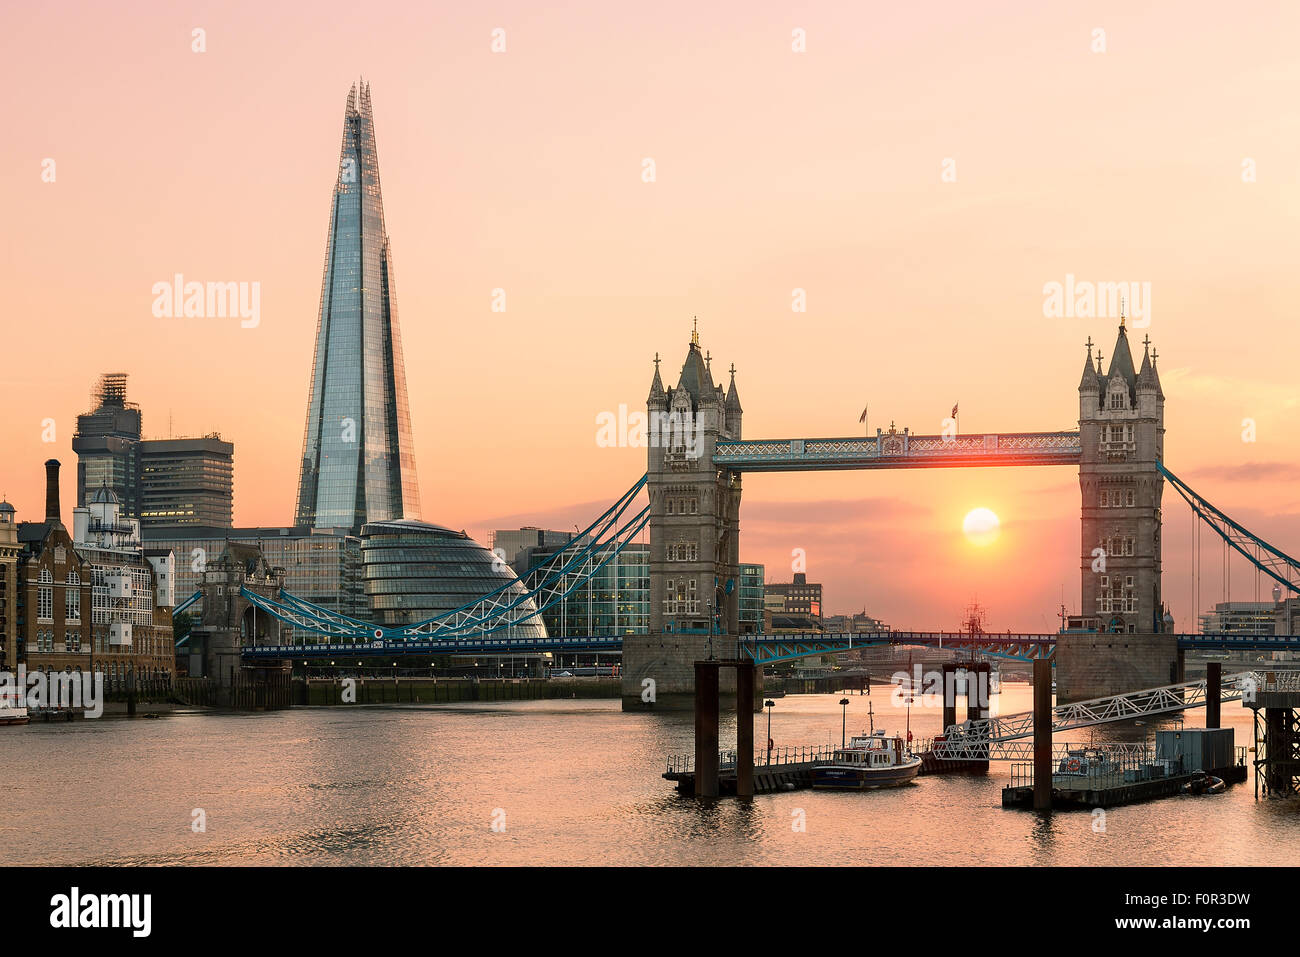 Londra, il Tower Bridge e Shard London Bridge al tramonto Immagini Stock